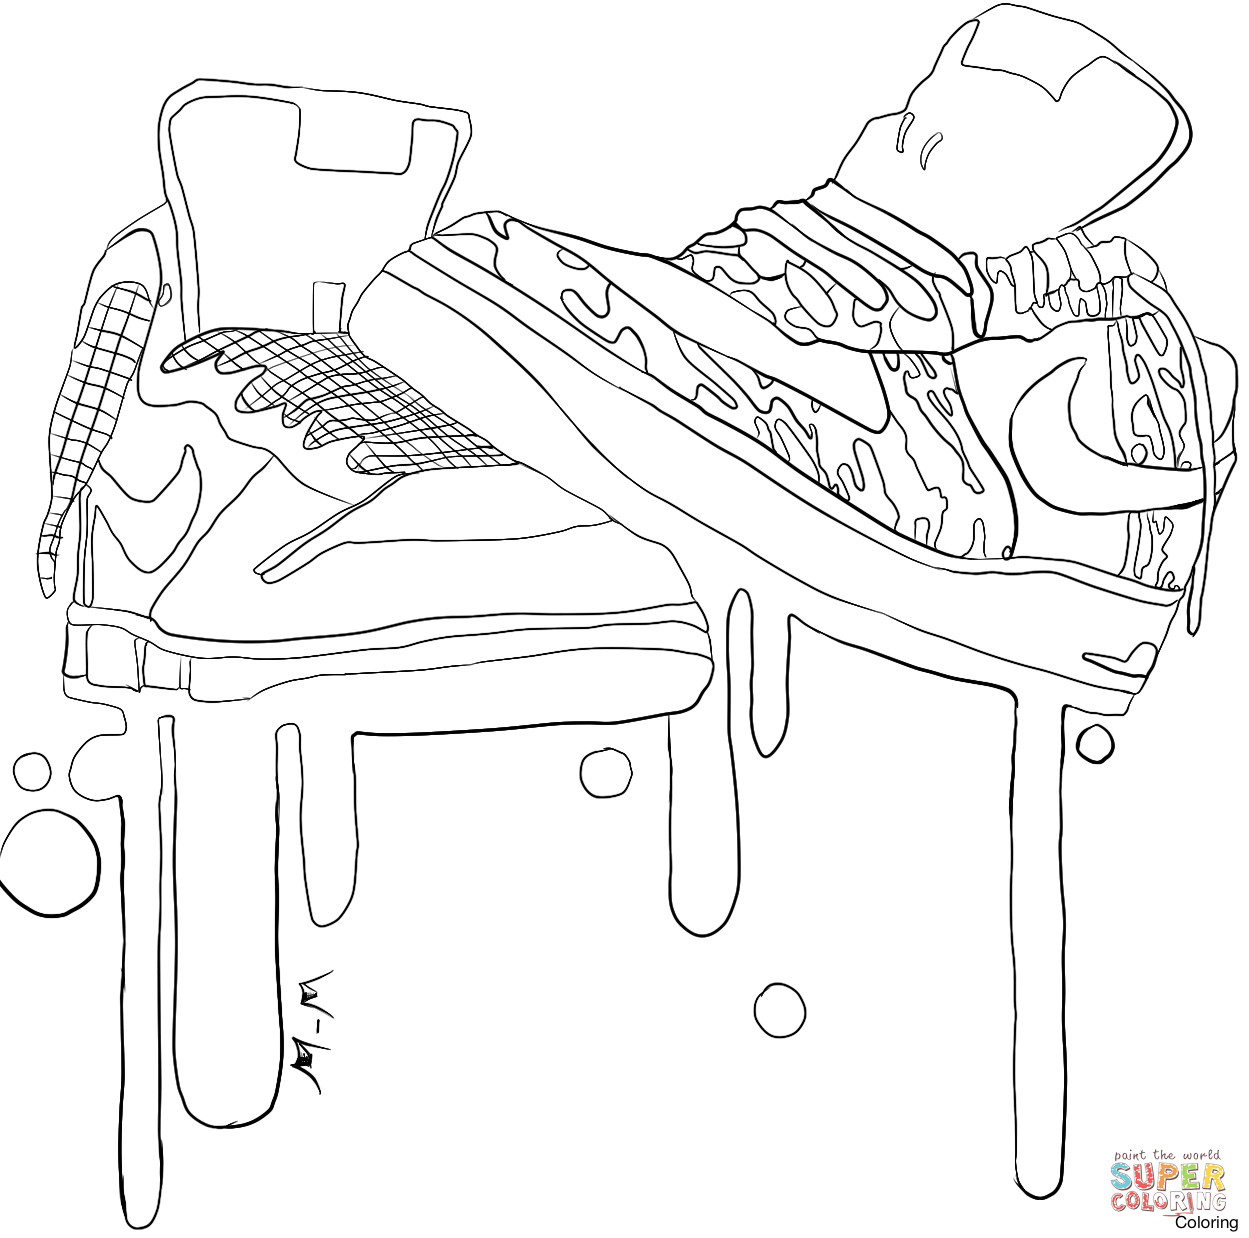 1249x1238 Coloring Pages Nike Shoes Page Fun Brilliant